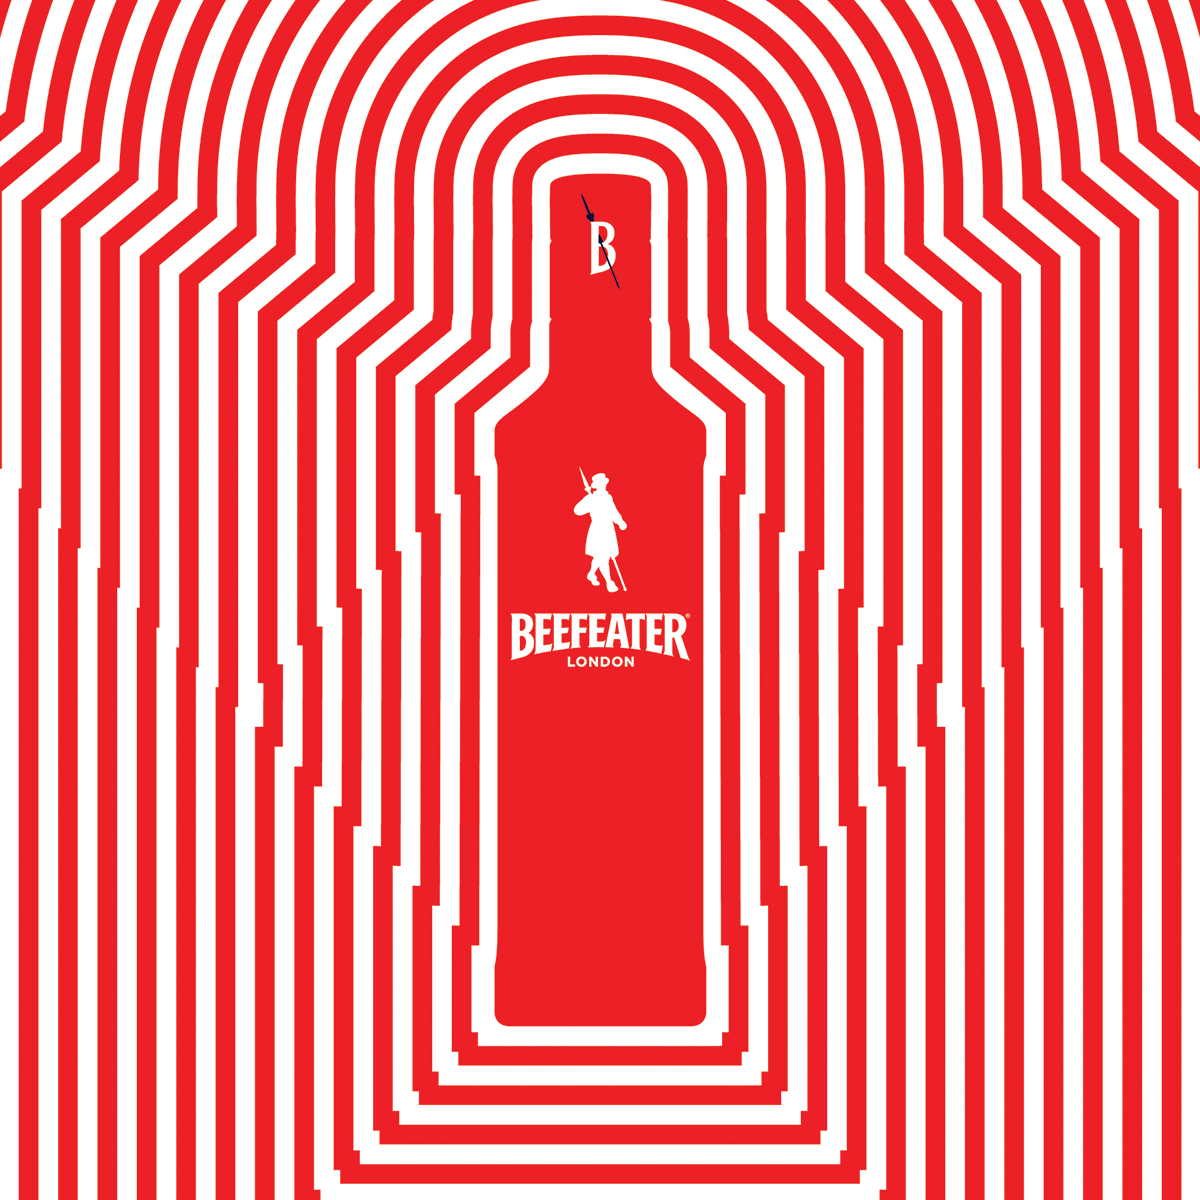 Beefeater Outdoor Kitchen: Beefeater Outdoor Advert By Impero: Gin